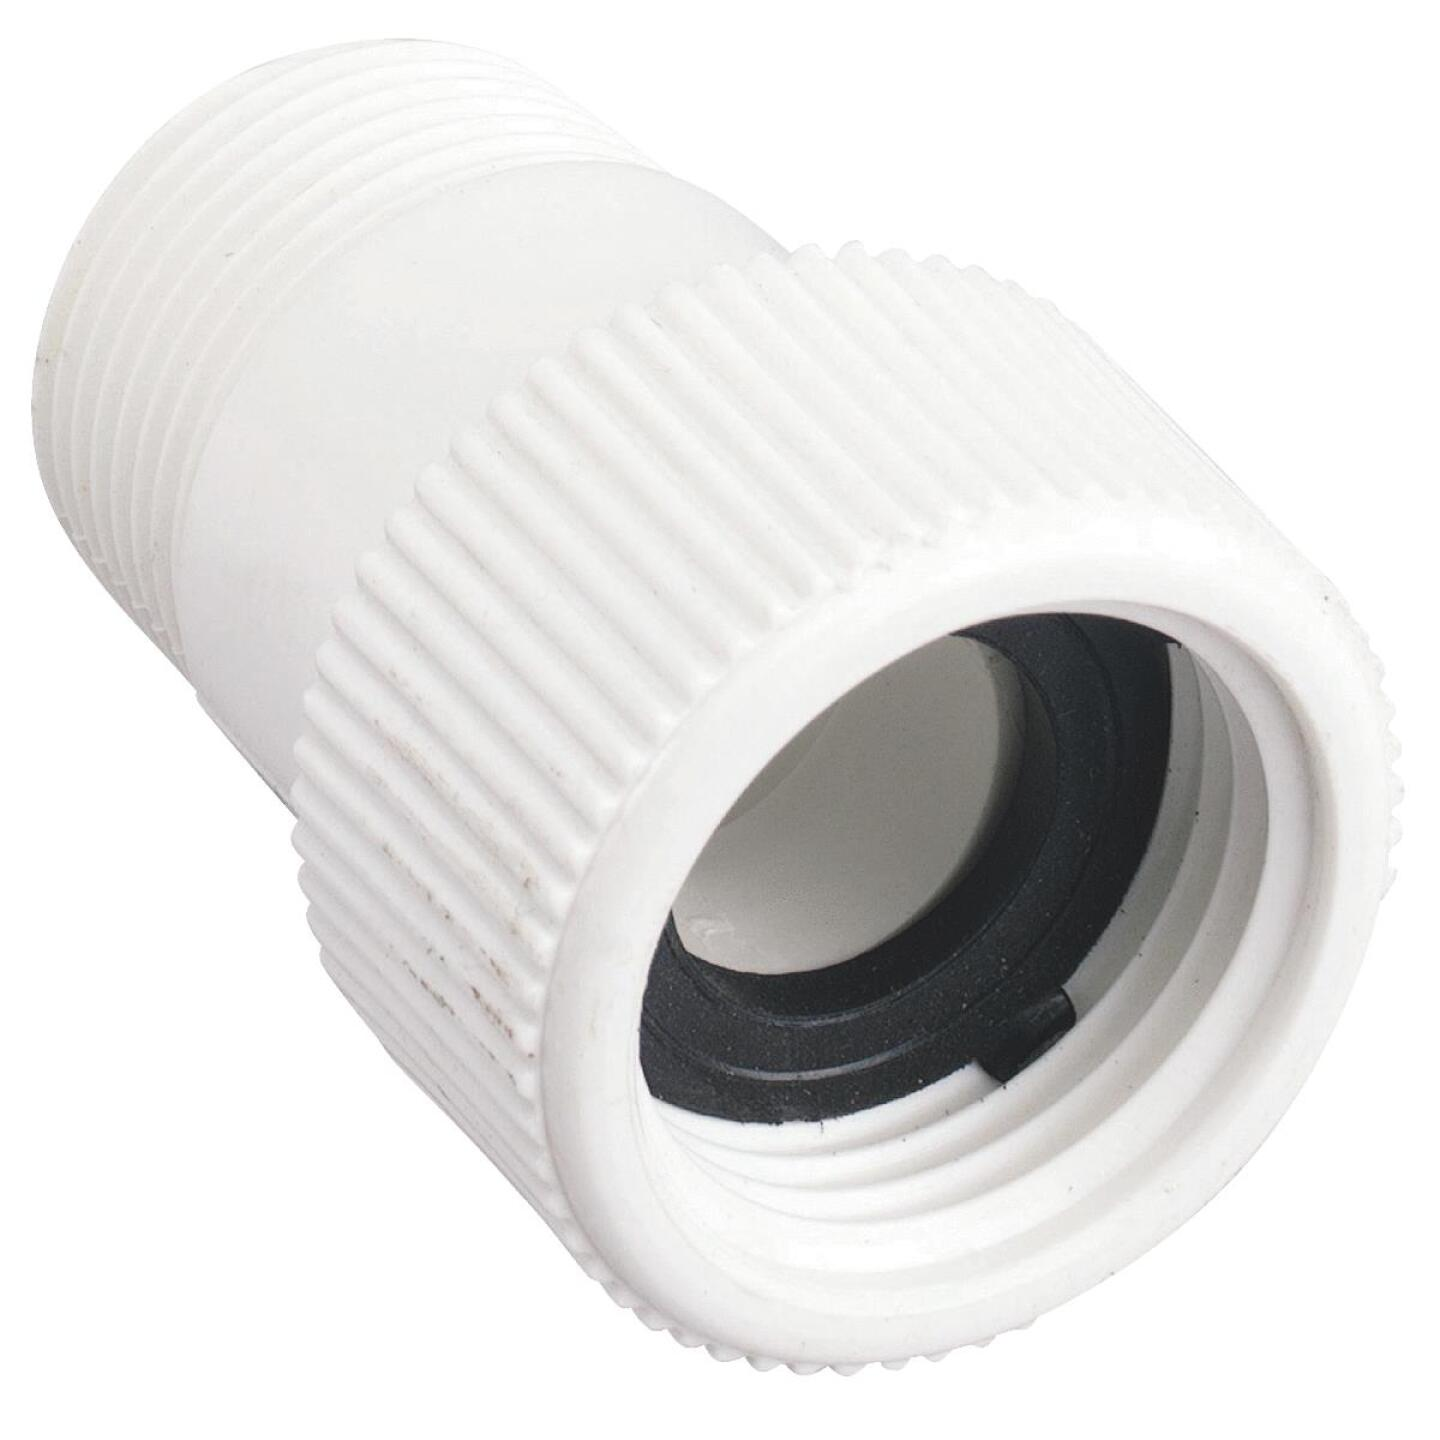 Orbit 3/4 In. MPT x 3/4 In. FHT PVC Hose Adapter Image 1